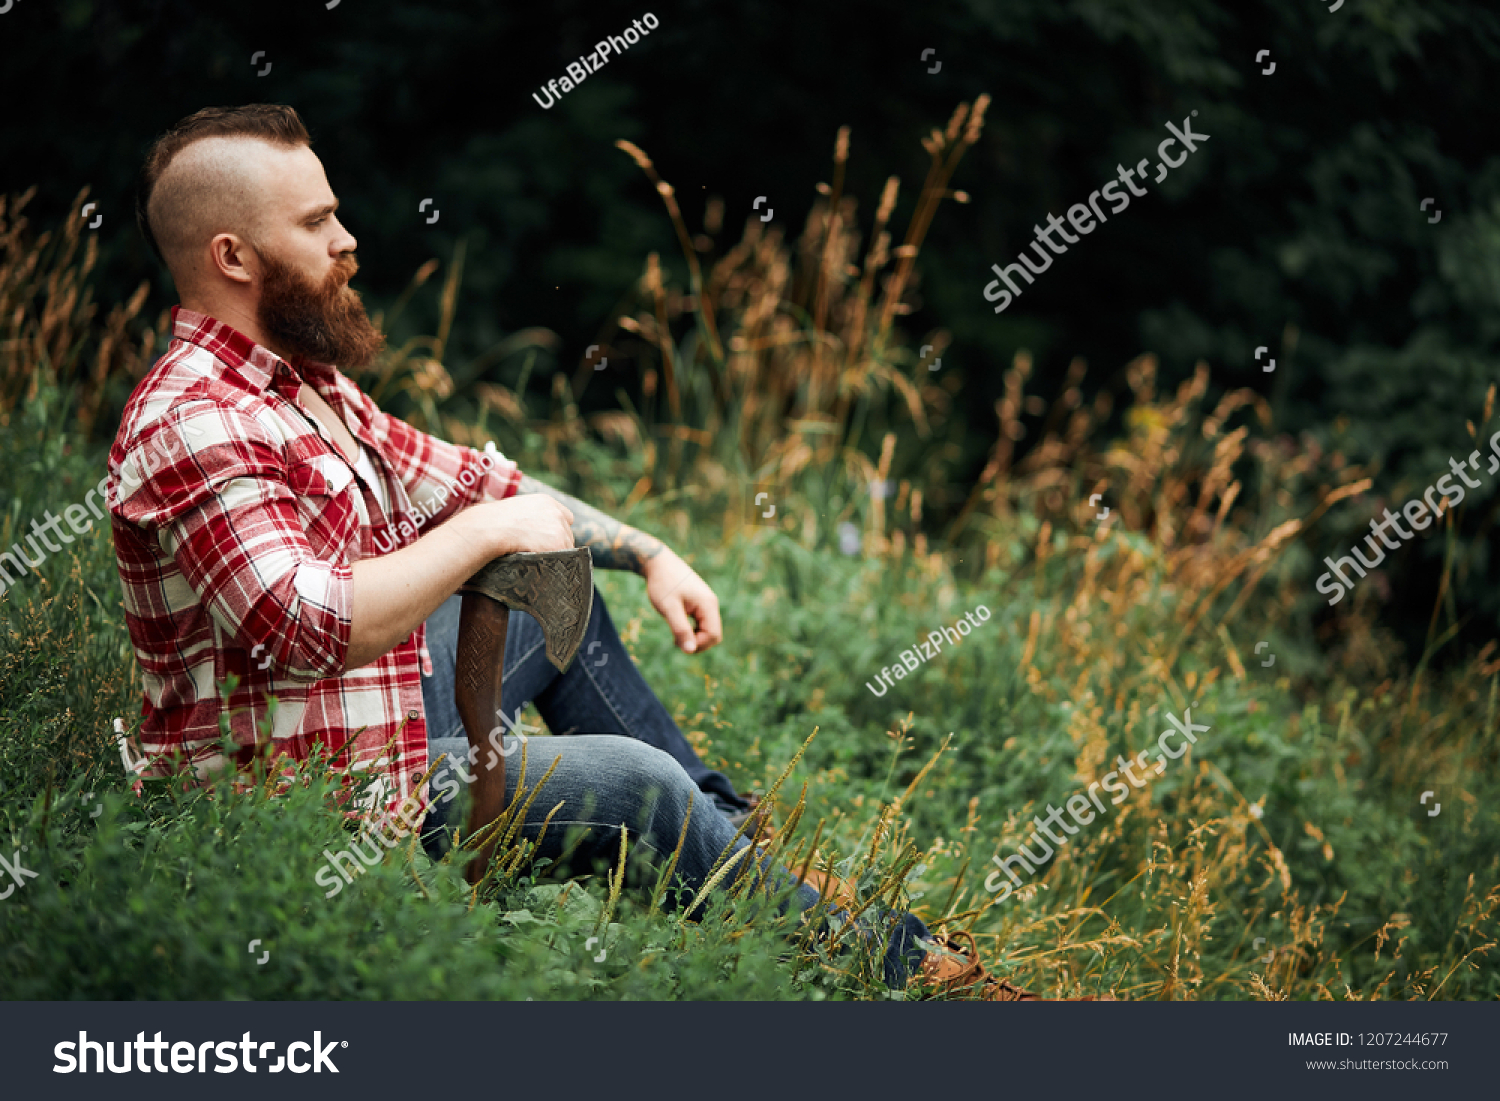 54c31f878d9 brutal lumberjack in red shirt with beard holding axe sitting in Forest  after work